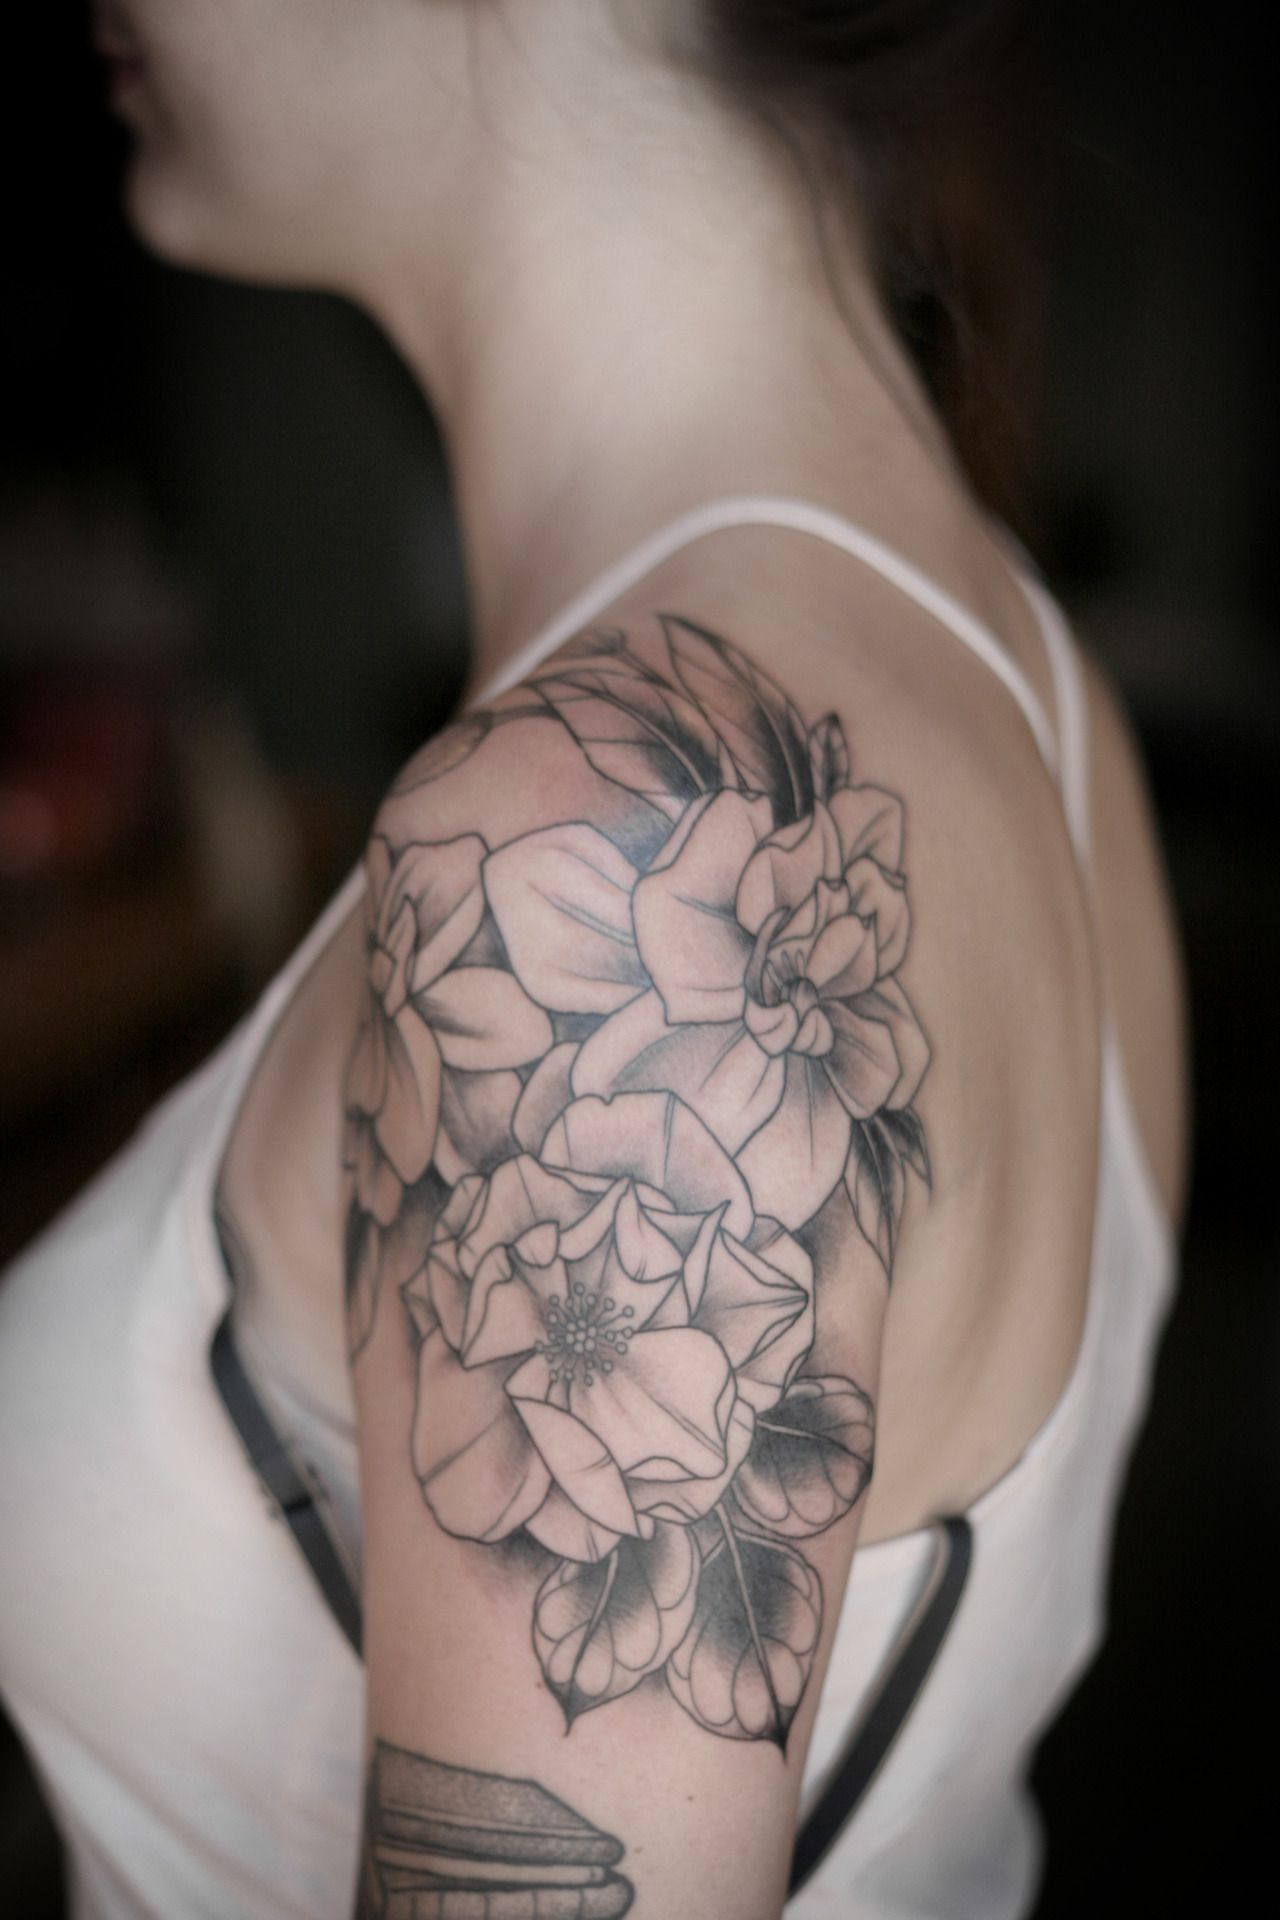 Rose and gardenias for Brianne. Color in January! Thanks